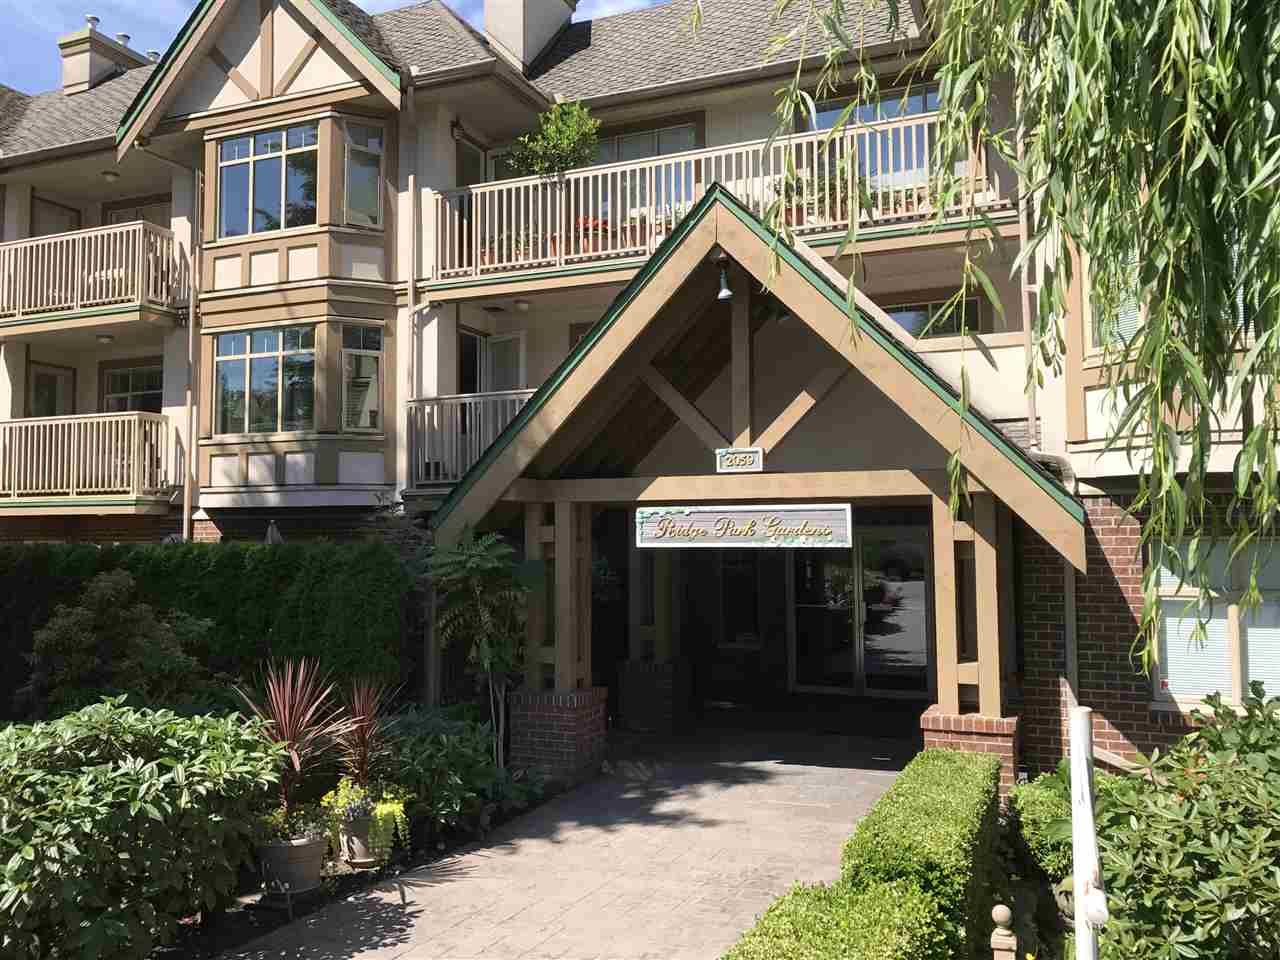 """Main Photo: 413 2059 CHESTERFIELD Avenue in North Vancouver: Central Lonsdale Condo for sale in """"Ridge Park Gardens"""" : MLS®# R2186291"""